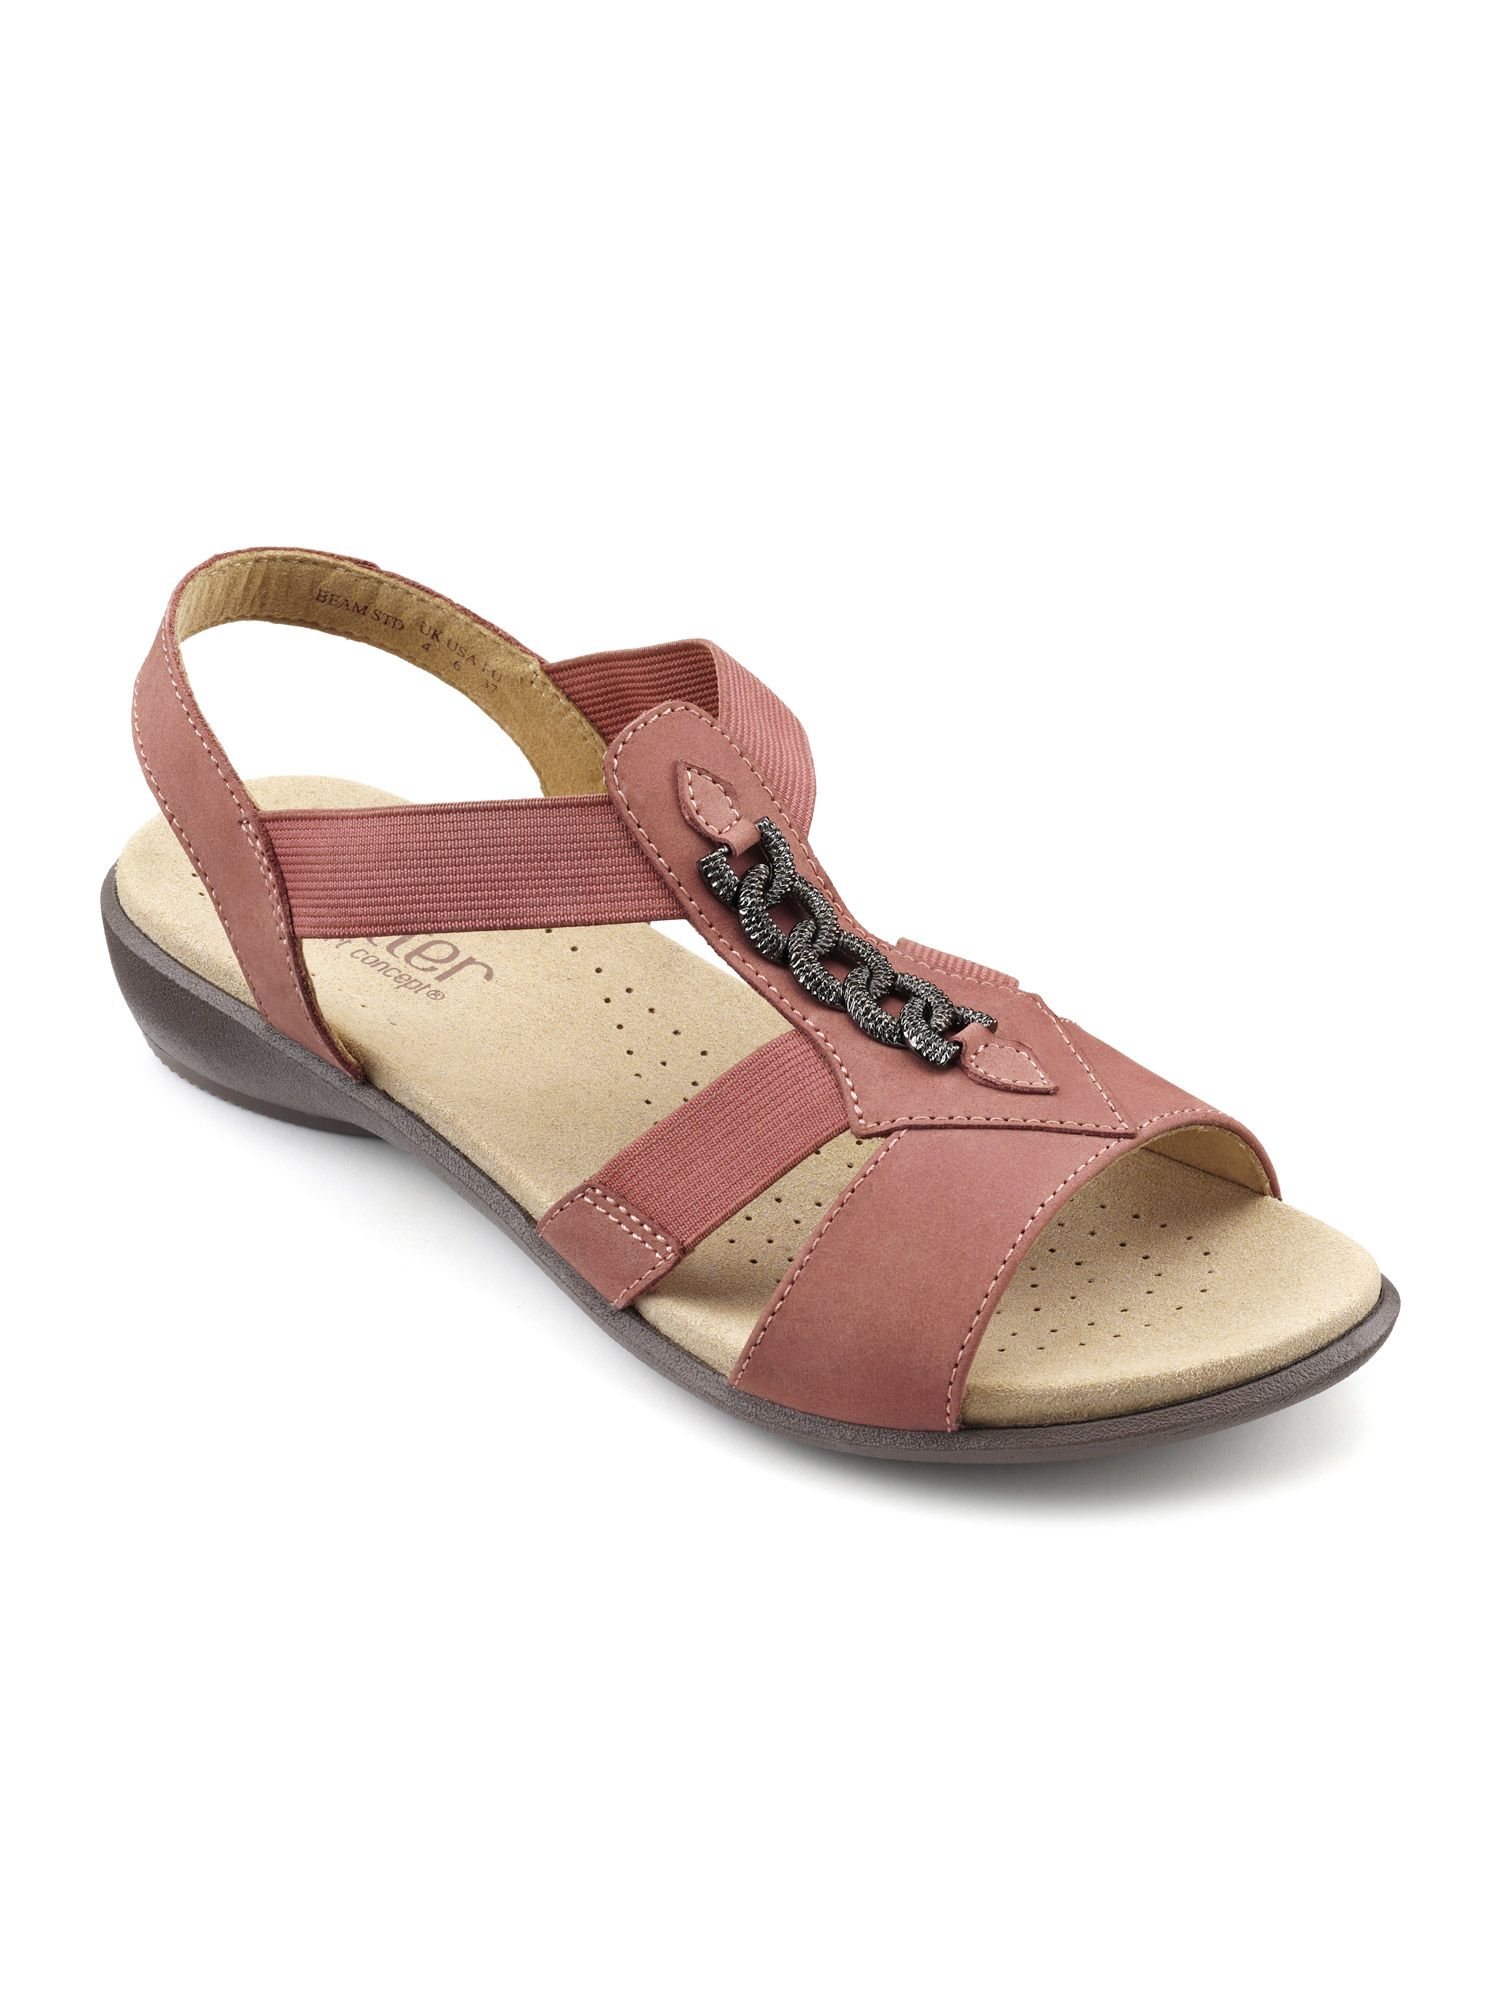 Hotter Beam Ladies Sandal, Salmon